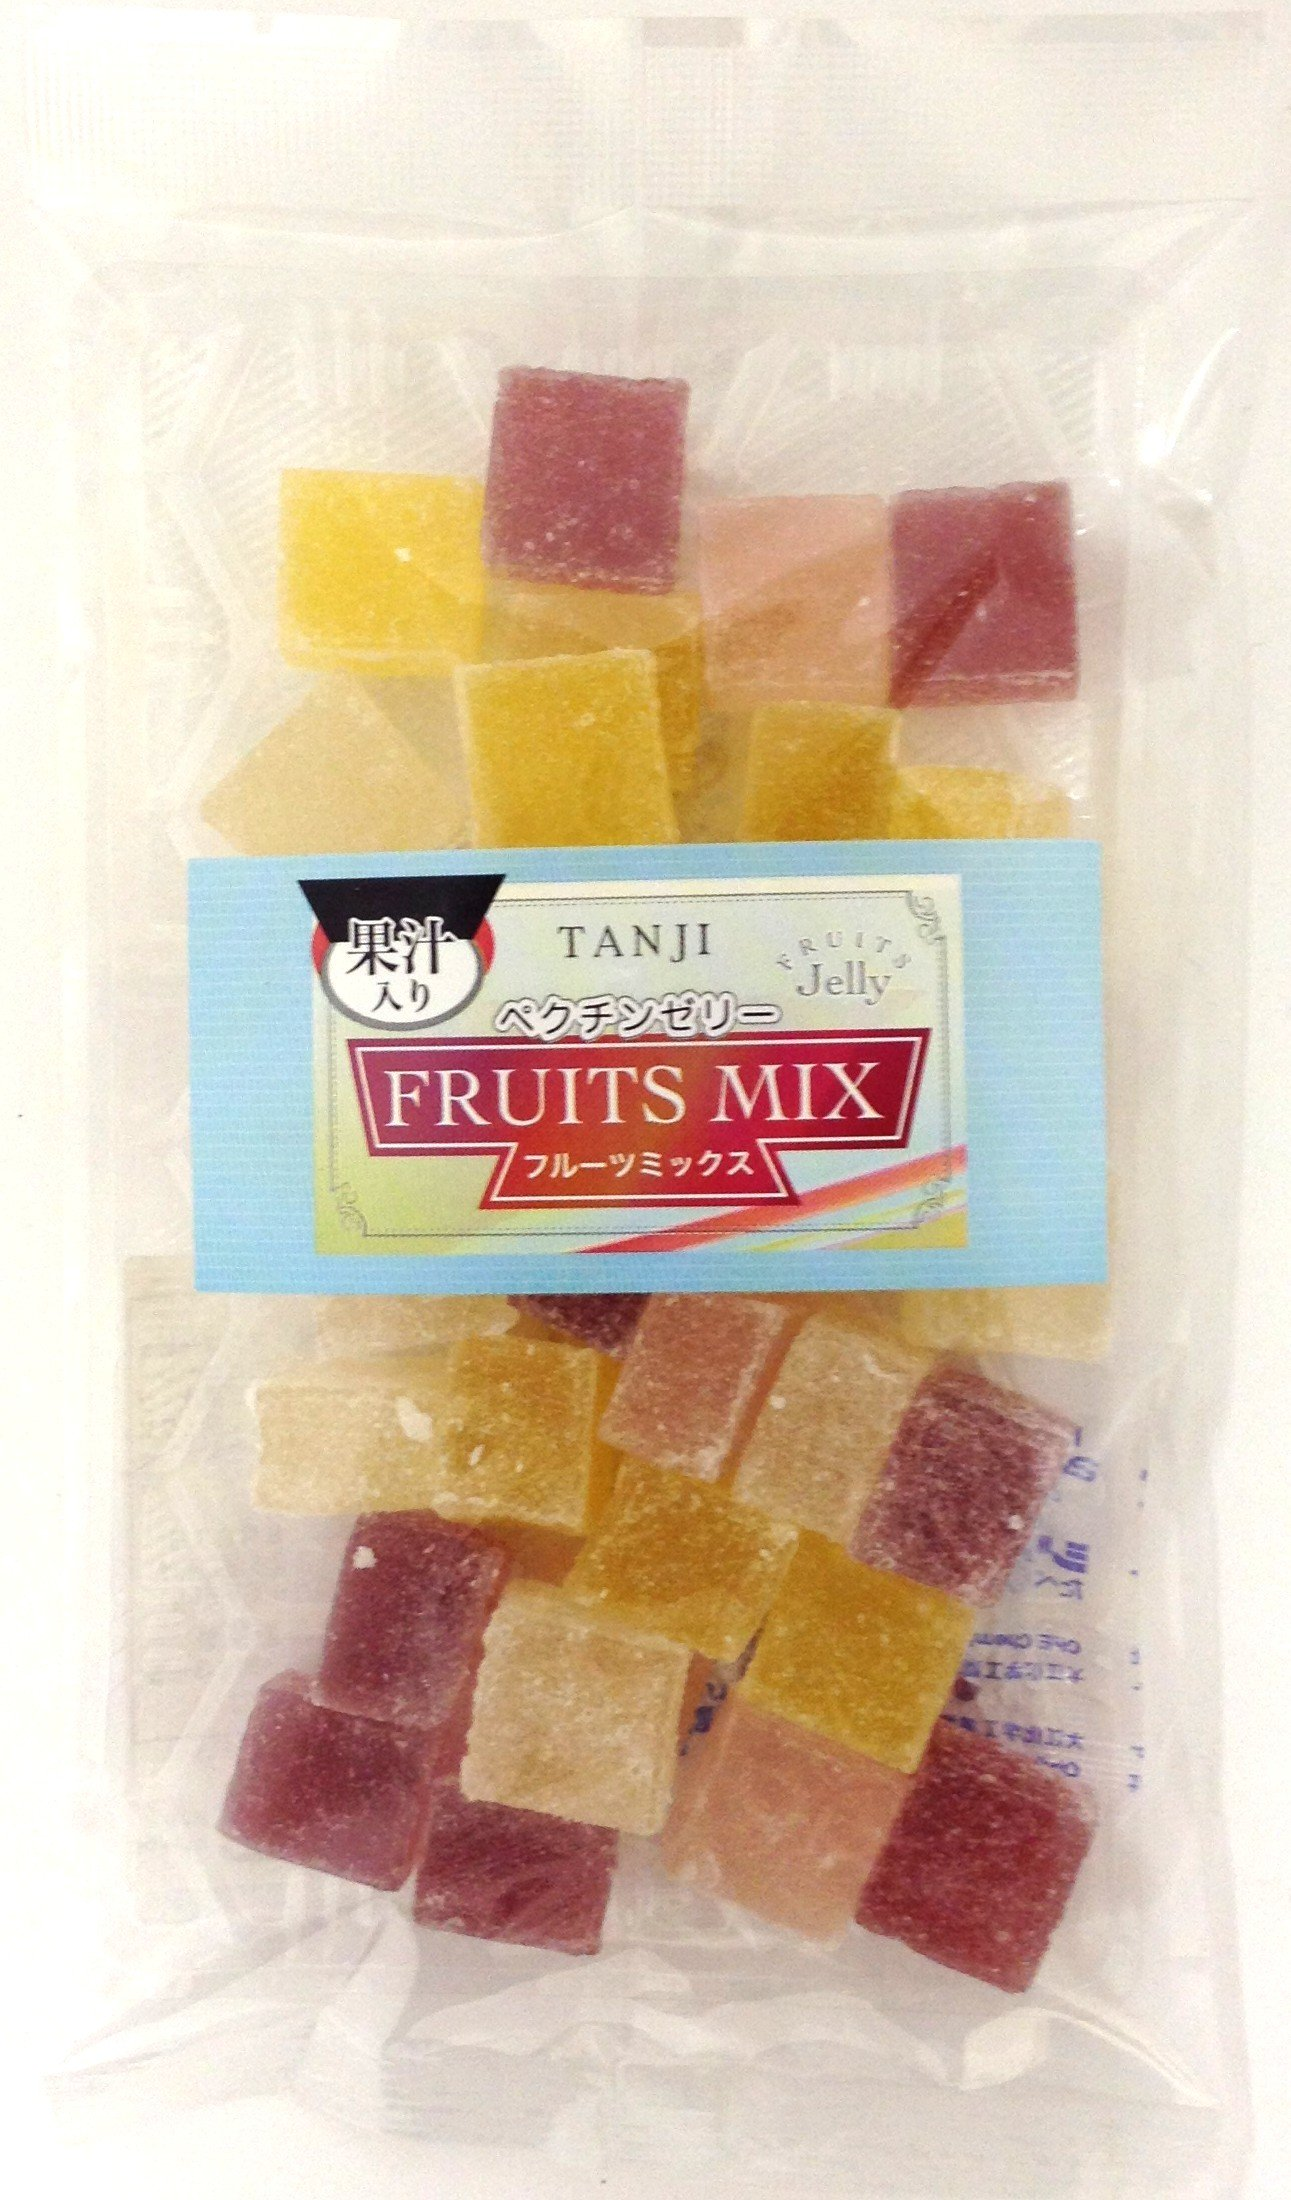 Tanji confectionery pectin jelly fruit mix 180gX10 bags